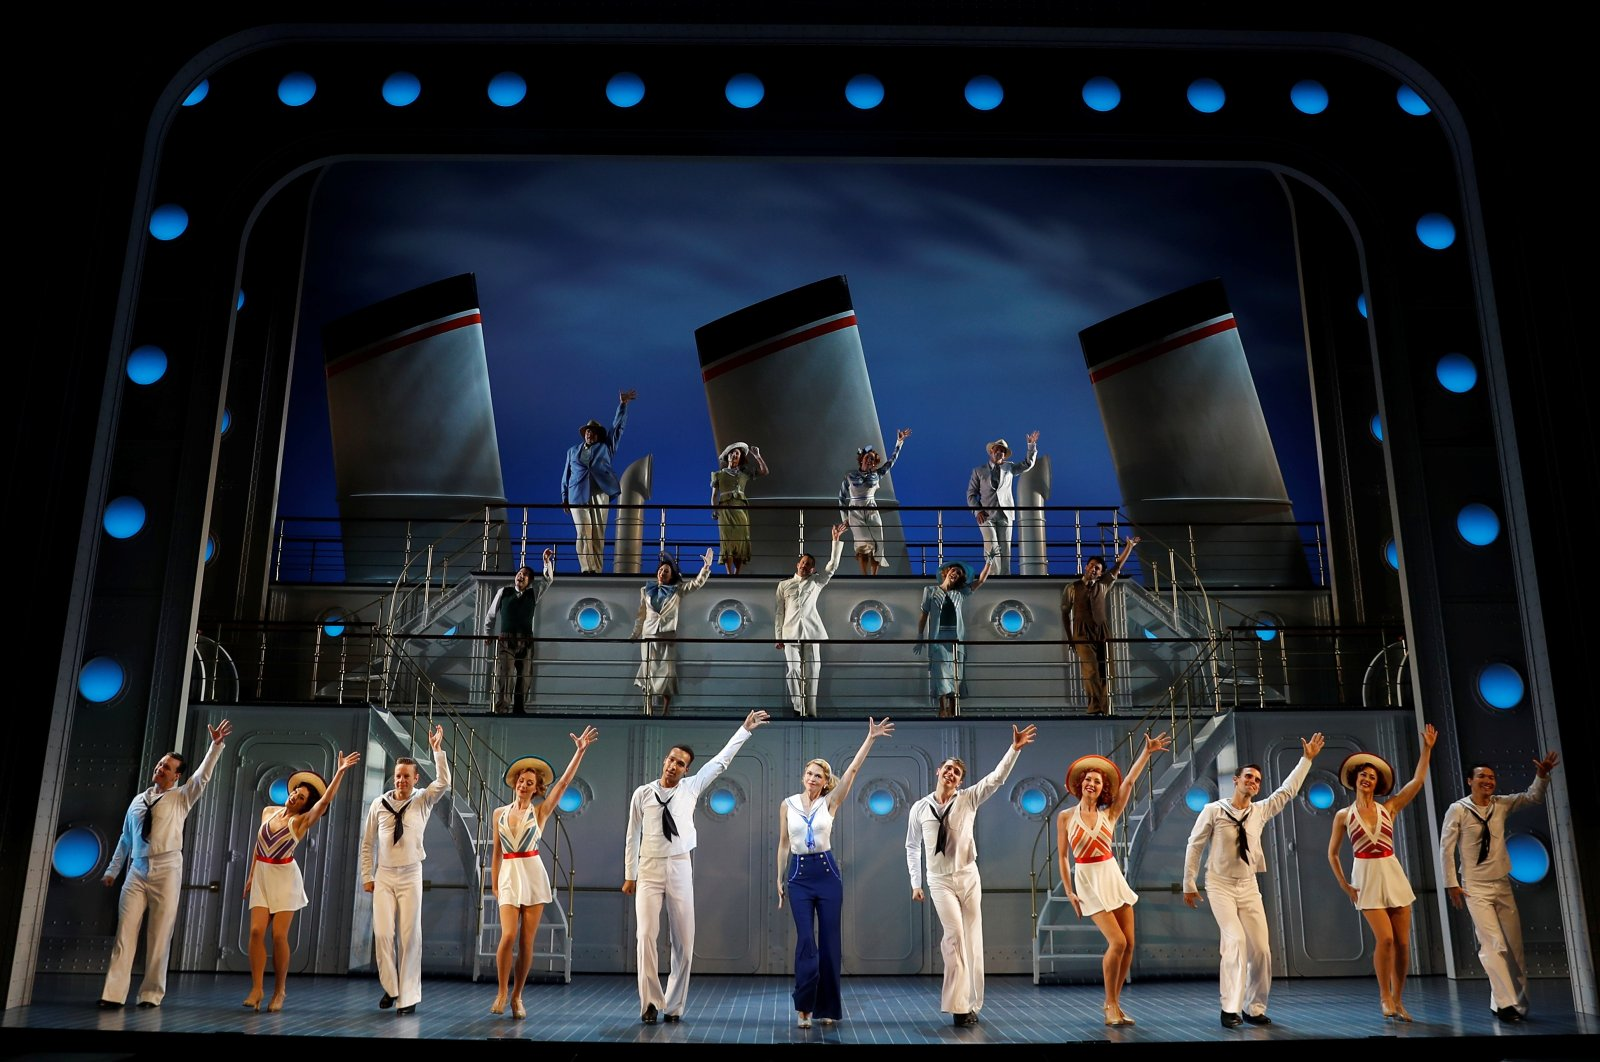 """Sutton Foster and the cast of  """"Anything Goes"""" perform during a media day for the show running at the Barbican Centre theater, in London, Britain, July 28, 2021. (REUTERS Photo)"""